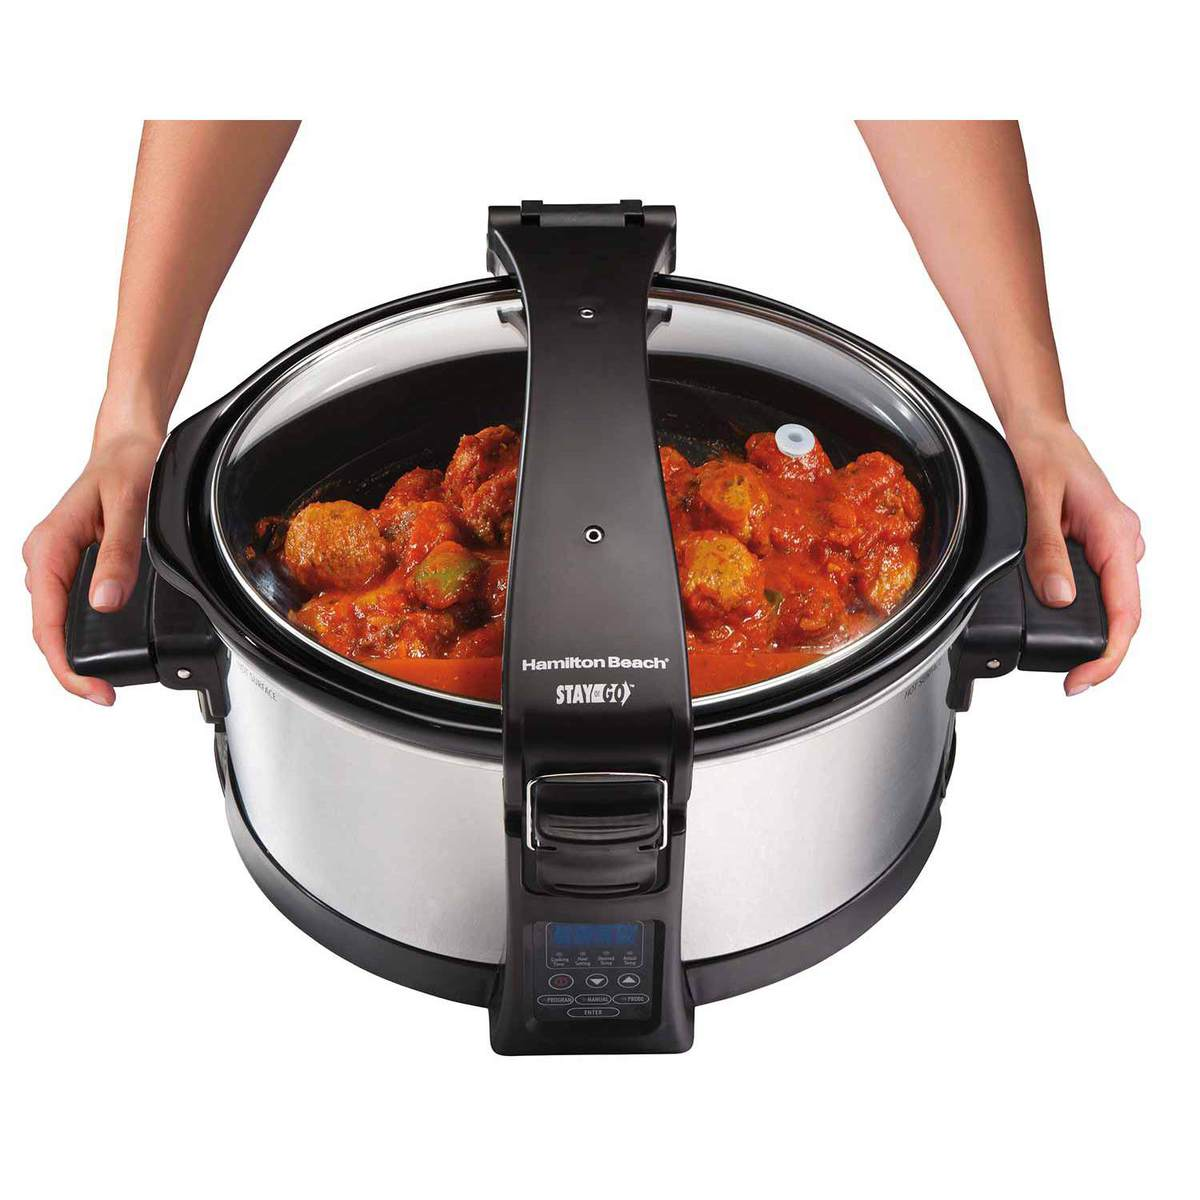 If you do need to move your slow cooker, be sure to use the attached handles.